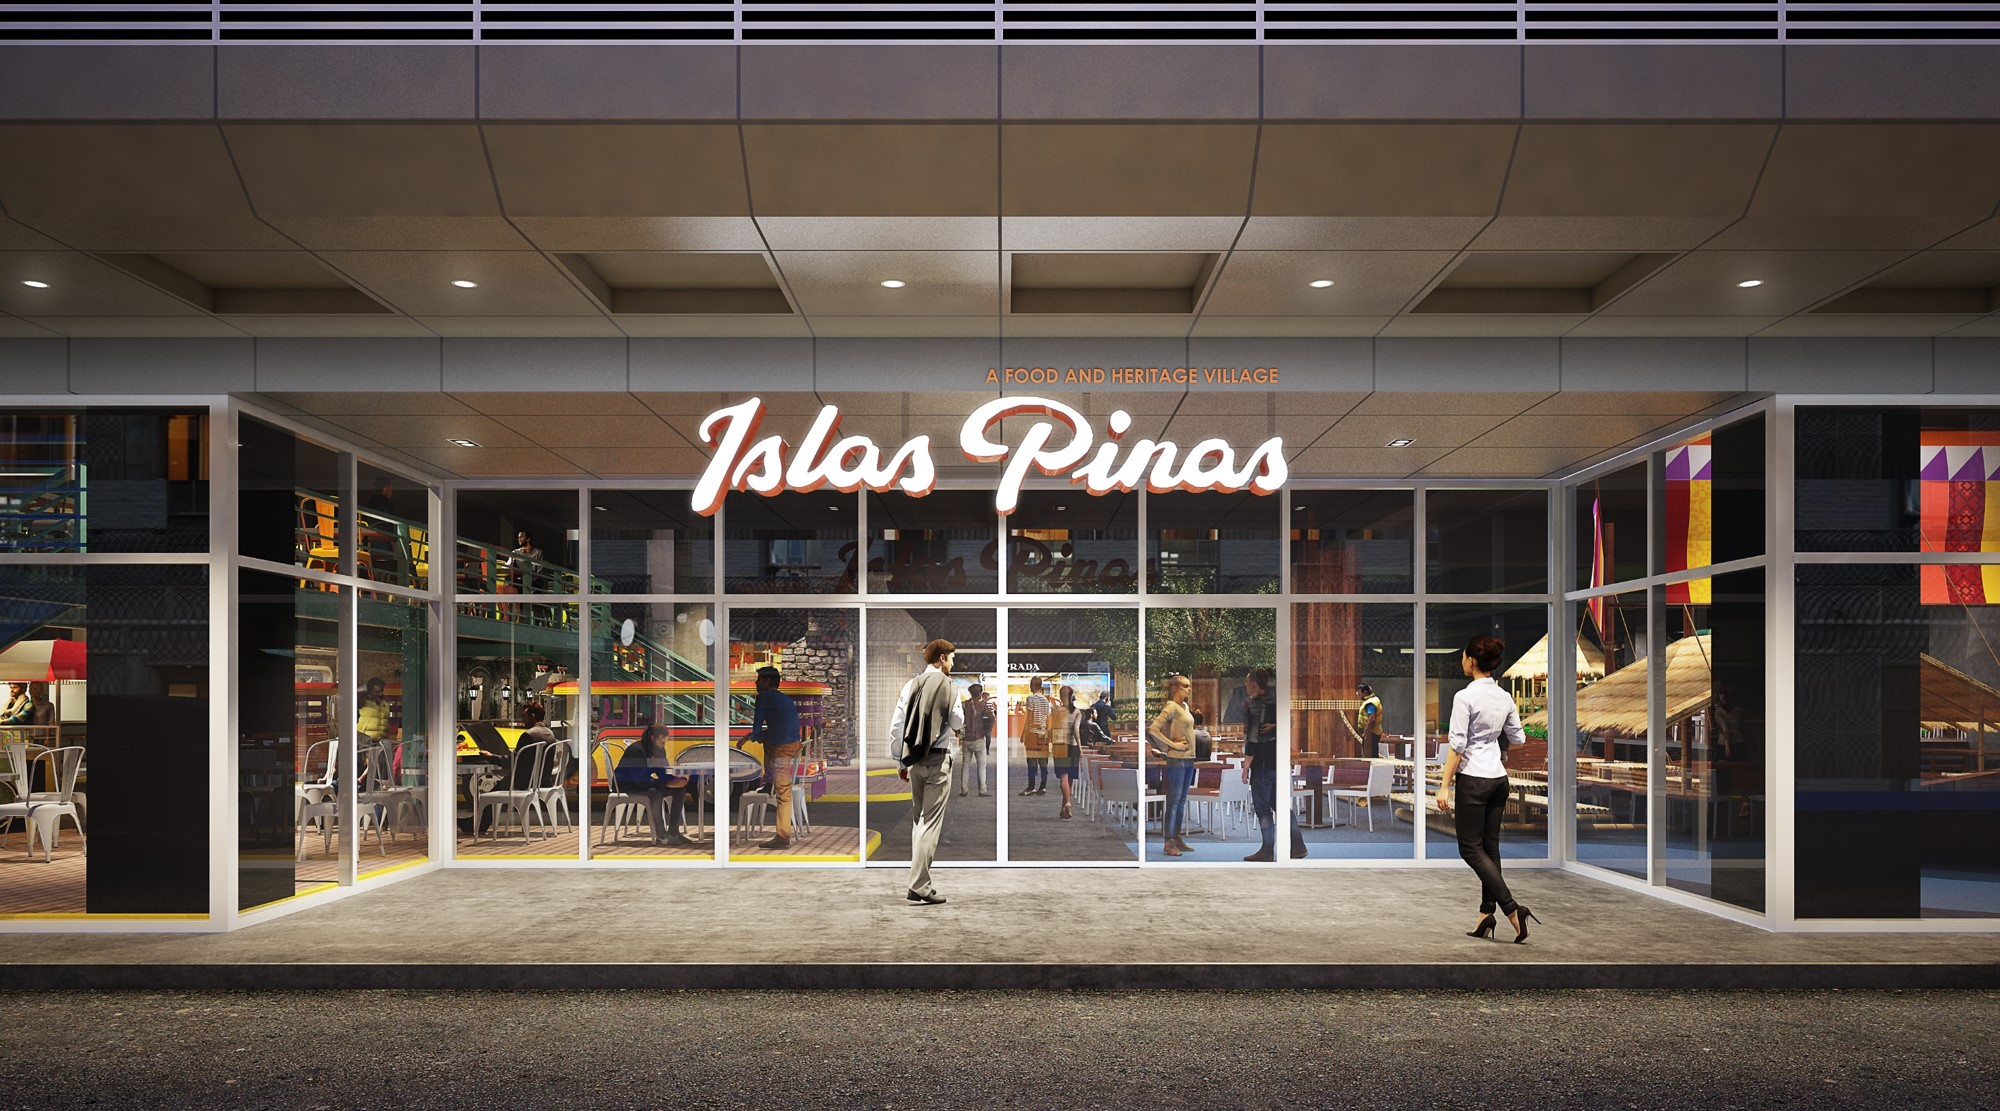 ISLAS PINAS, THE NEW ICON OF TOURISM THROUGH FILIPINO CUISINE, OPENS AT DOUBLEDRAGON PLAZA AT DD MERIDIAN PARK